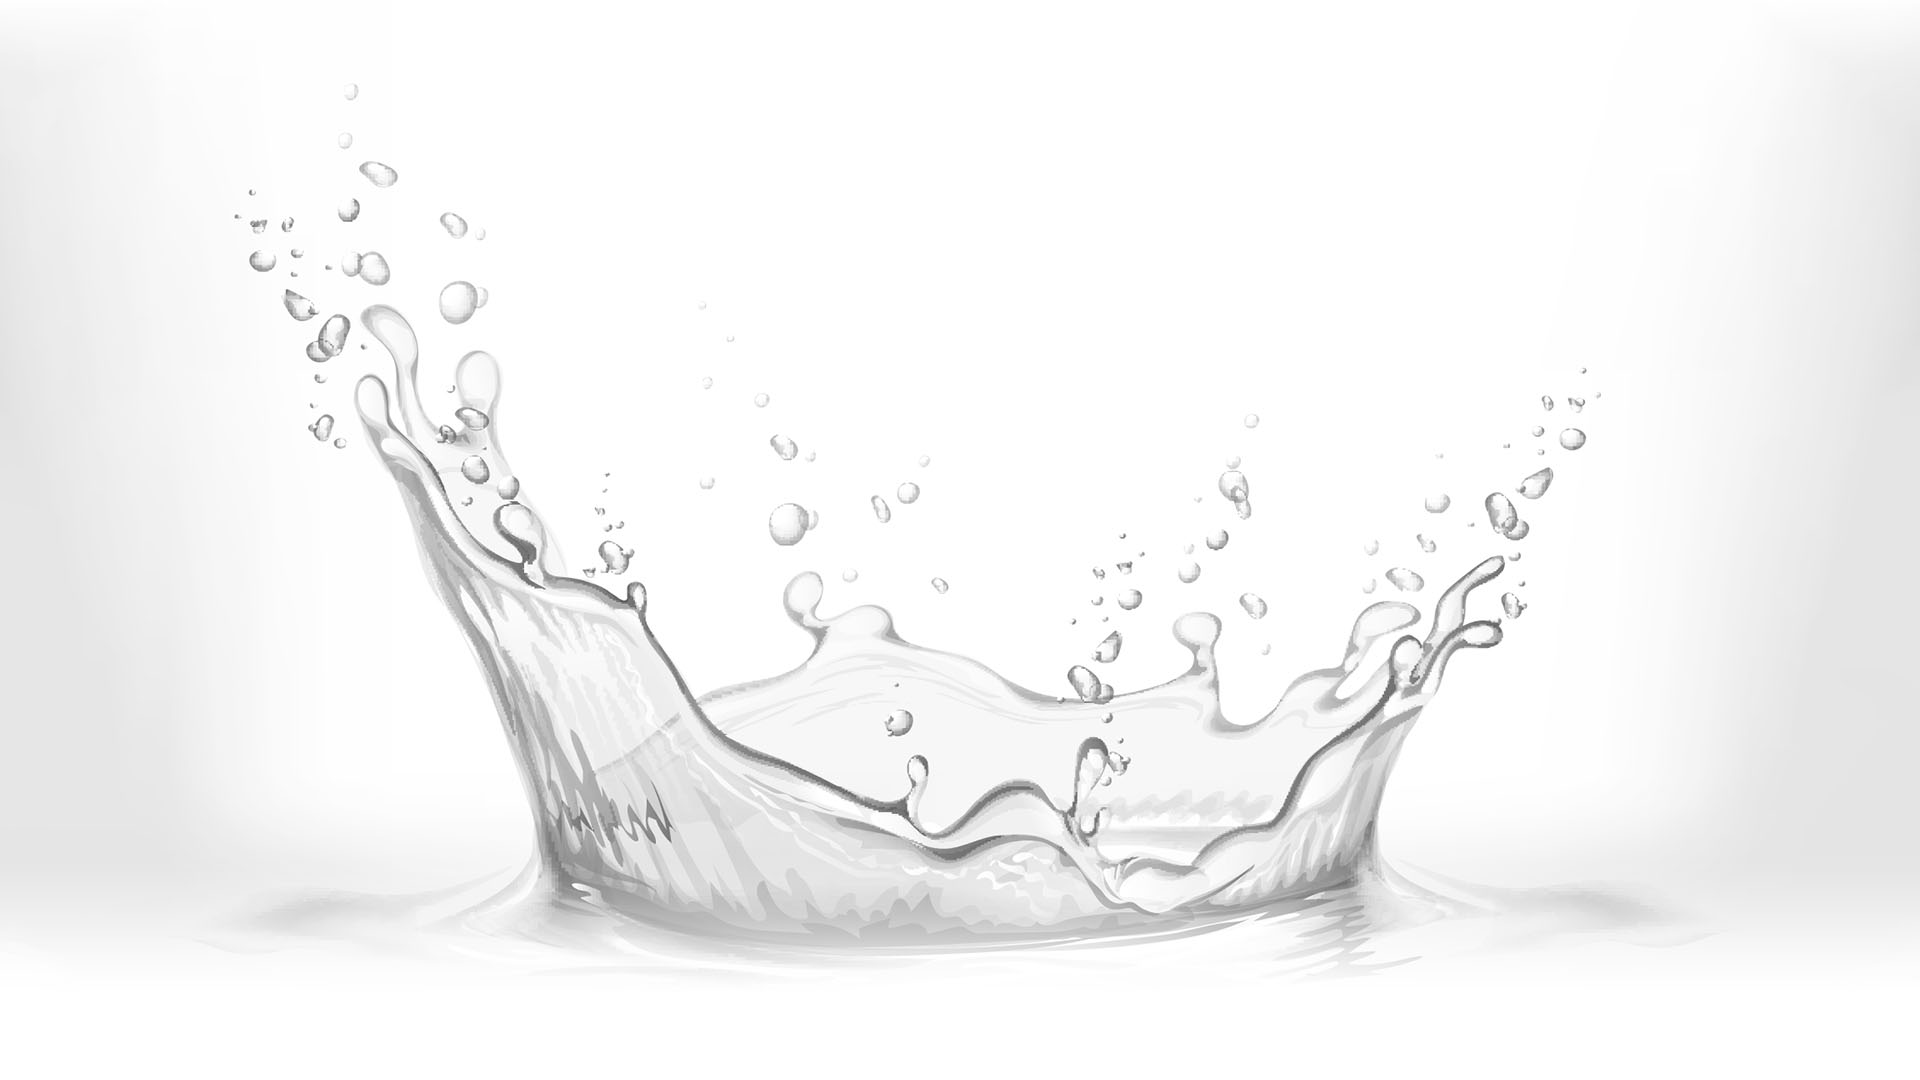 Splashing water in black and white.